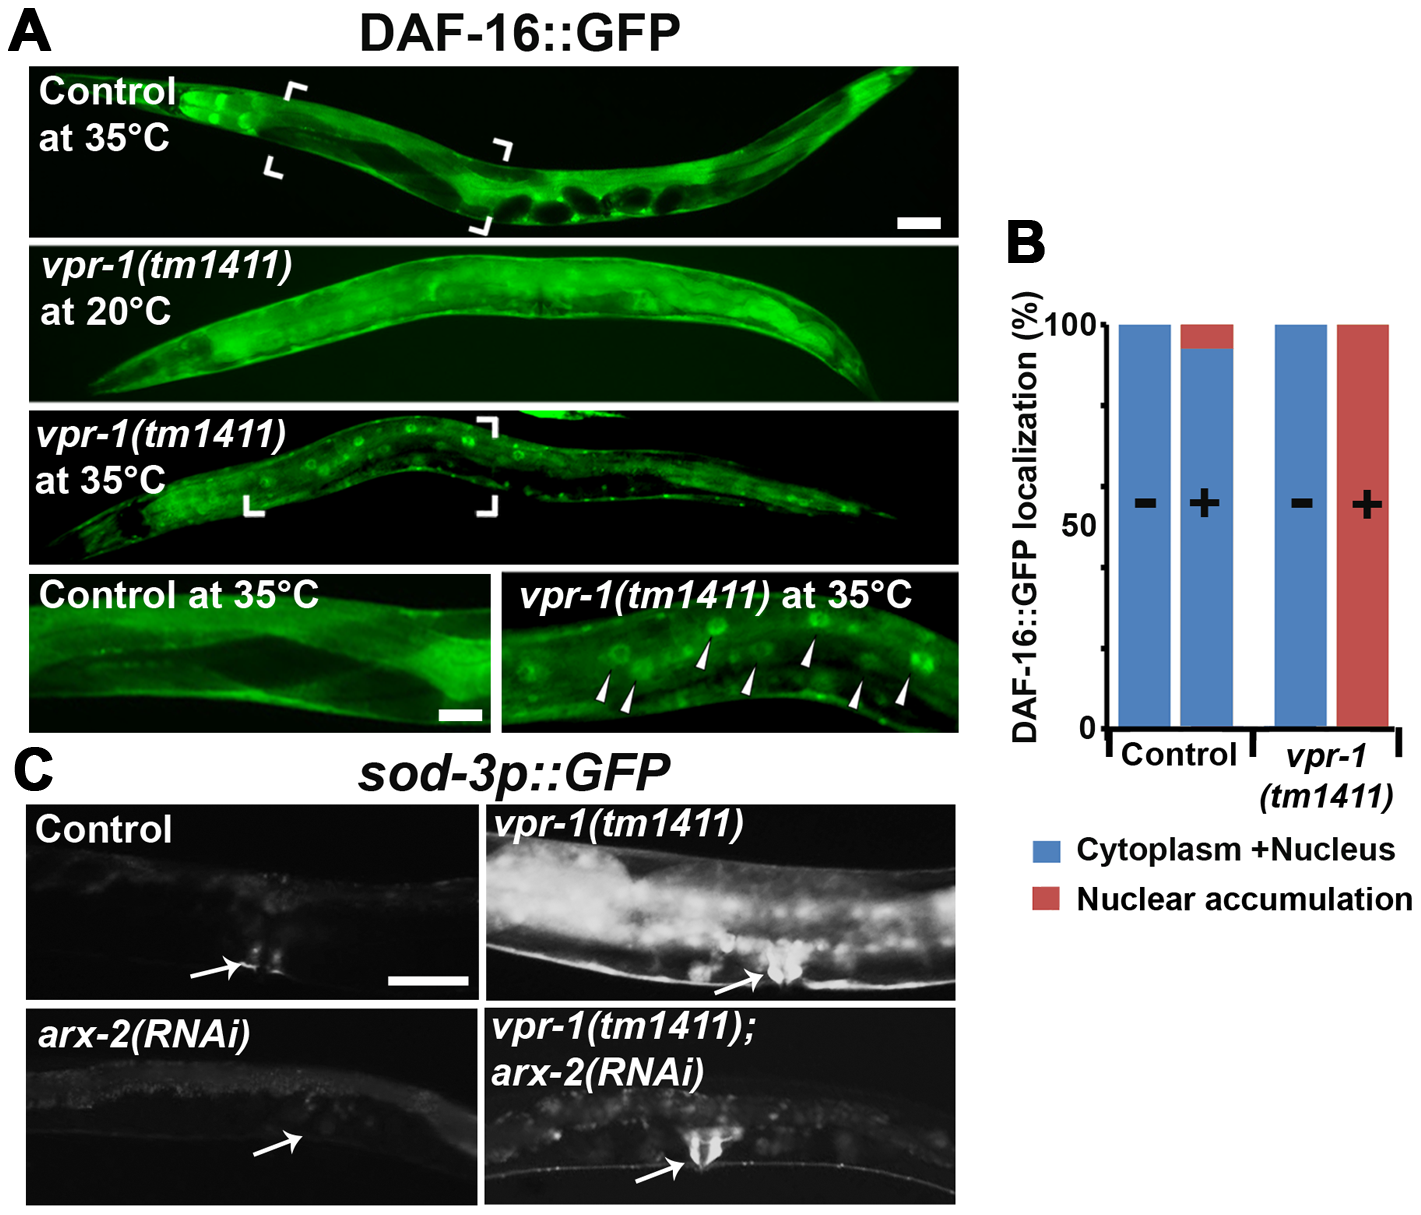 DAF-16 localization and activity in wild-type and mutant worms.